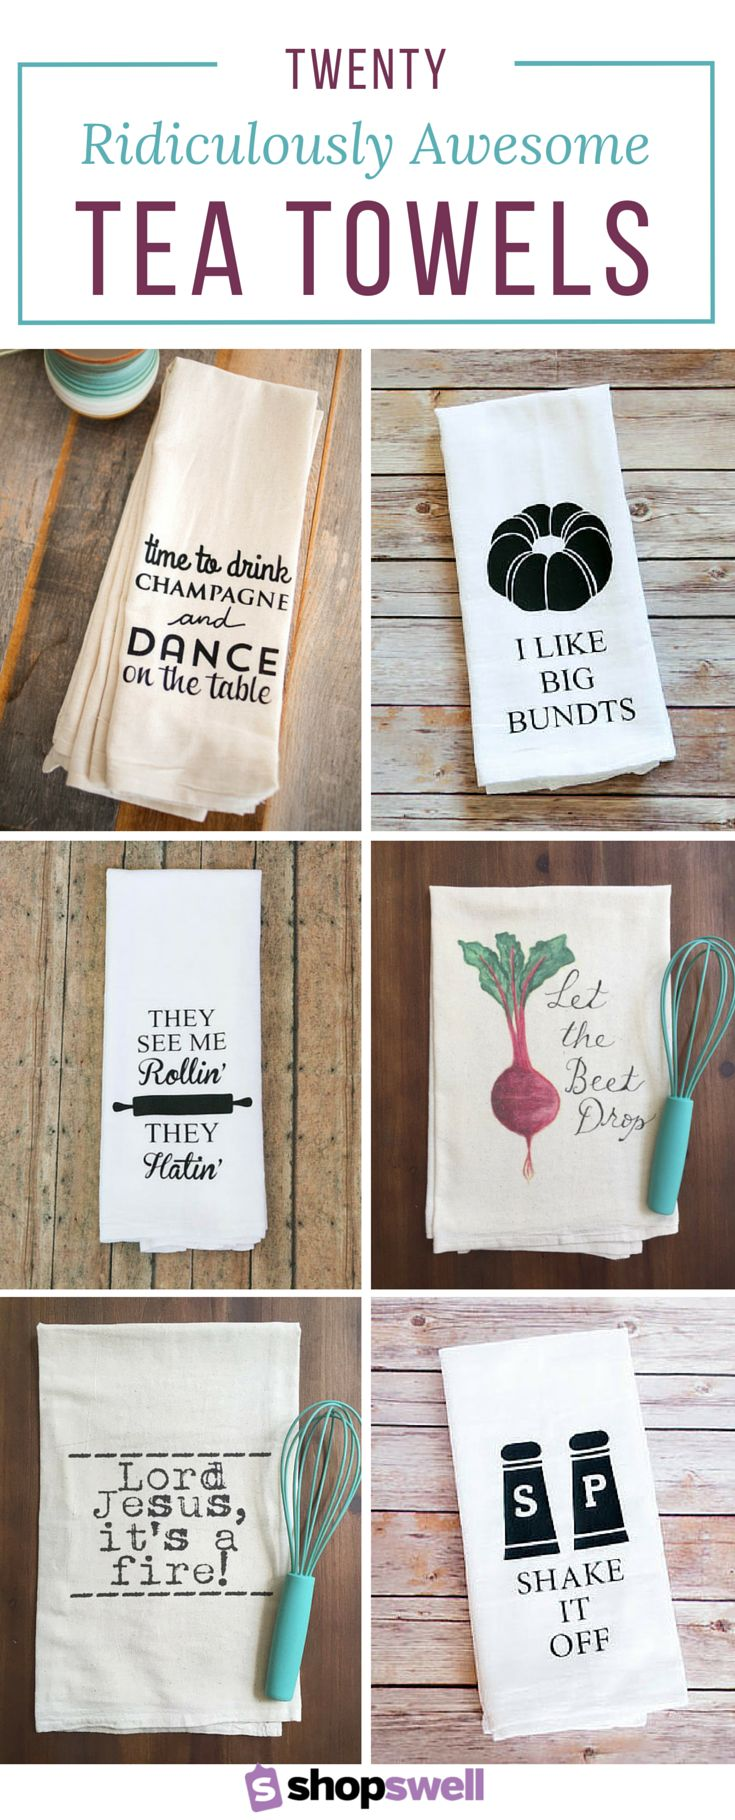 20 Ridiculously Awesome Tea Towels